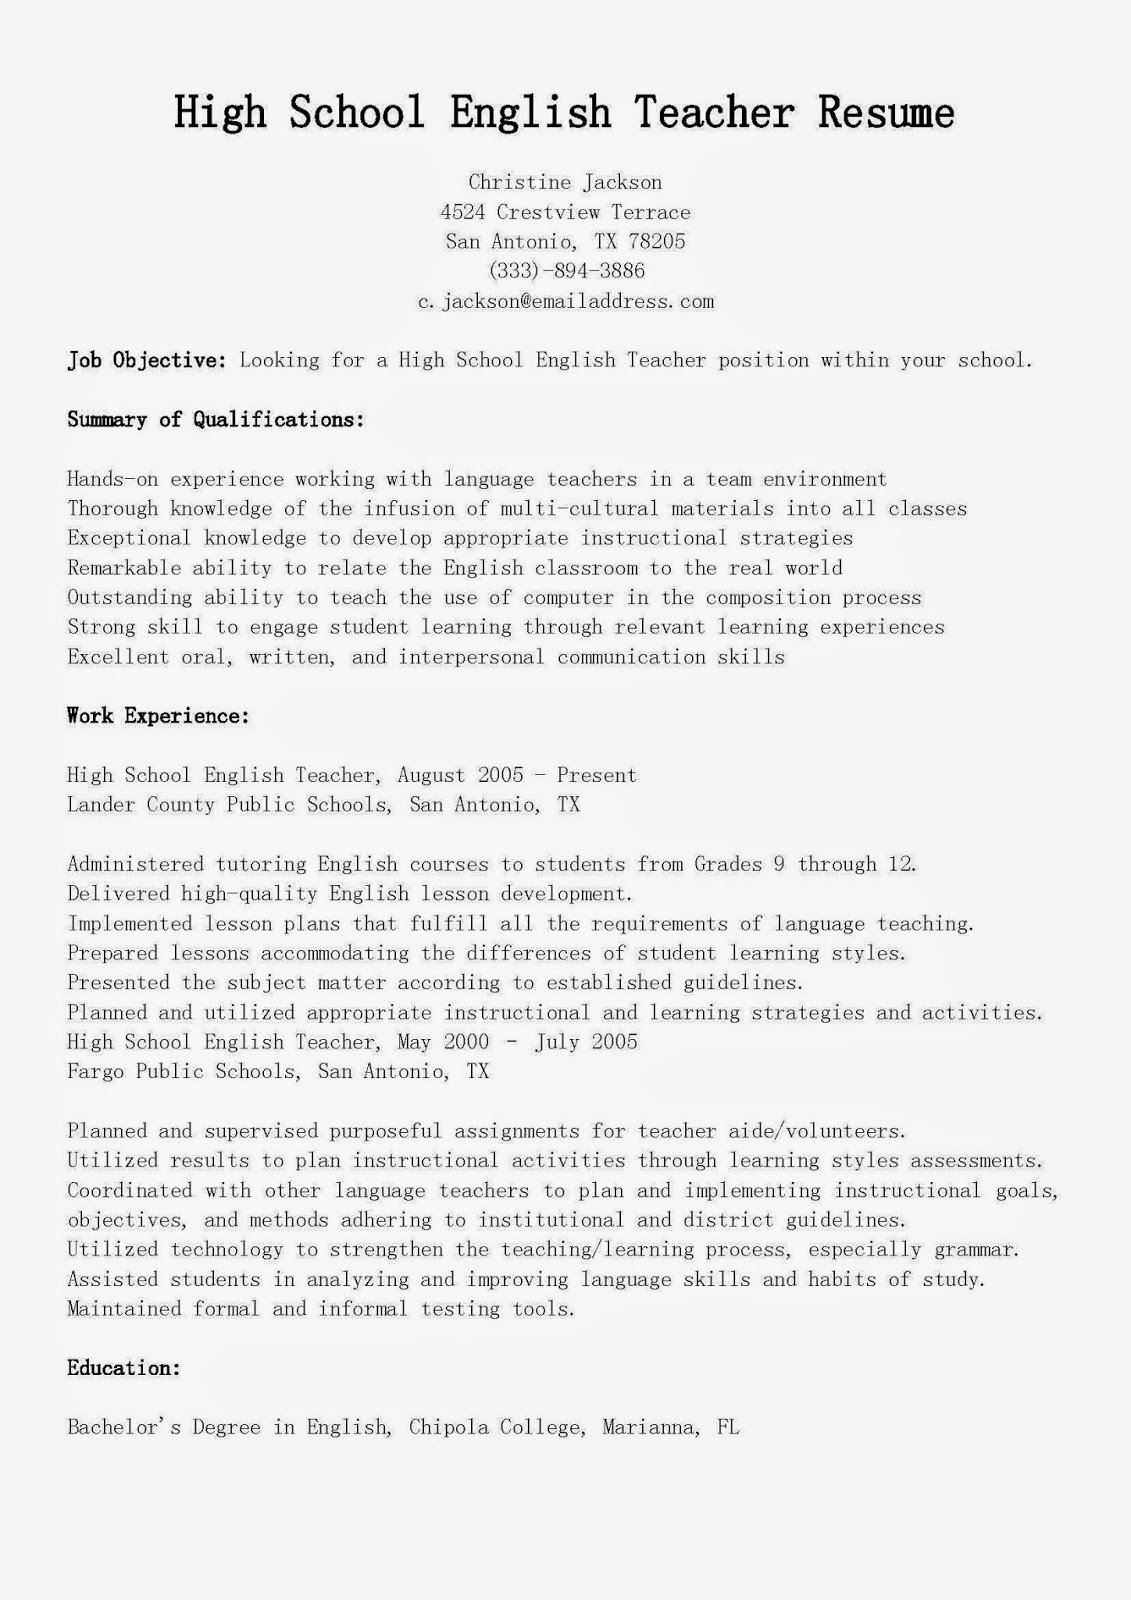 Resume Worksheet for Adults Awesome Ministry Of Education and Training Helping with Homework